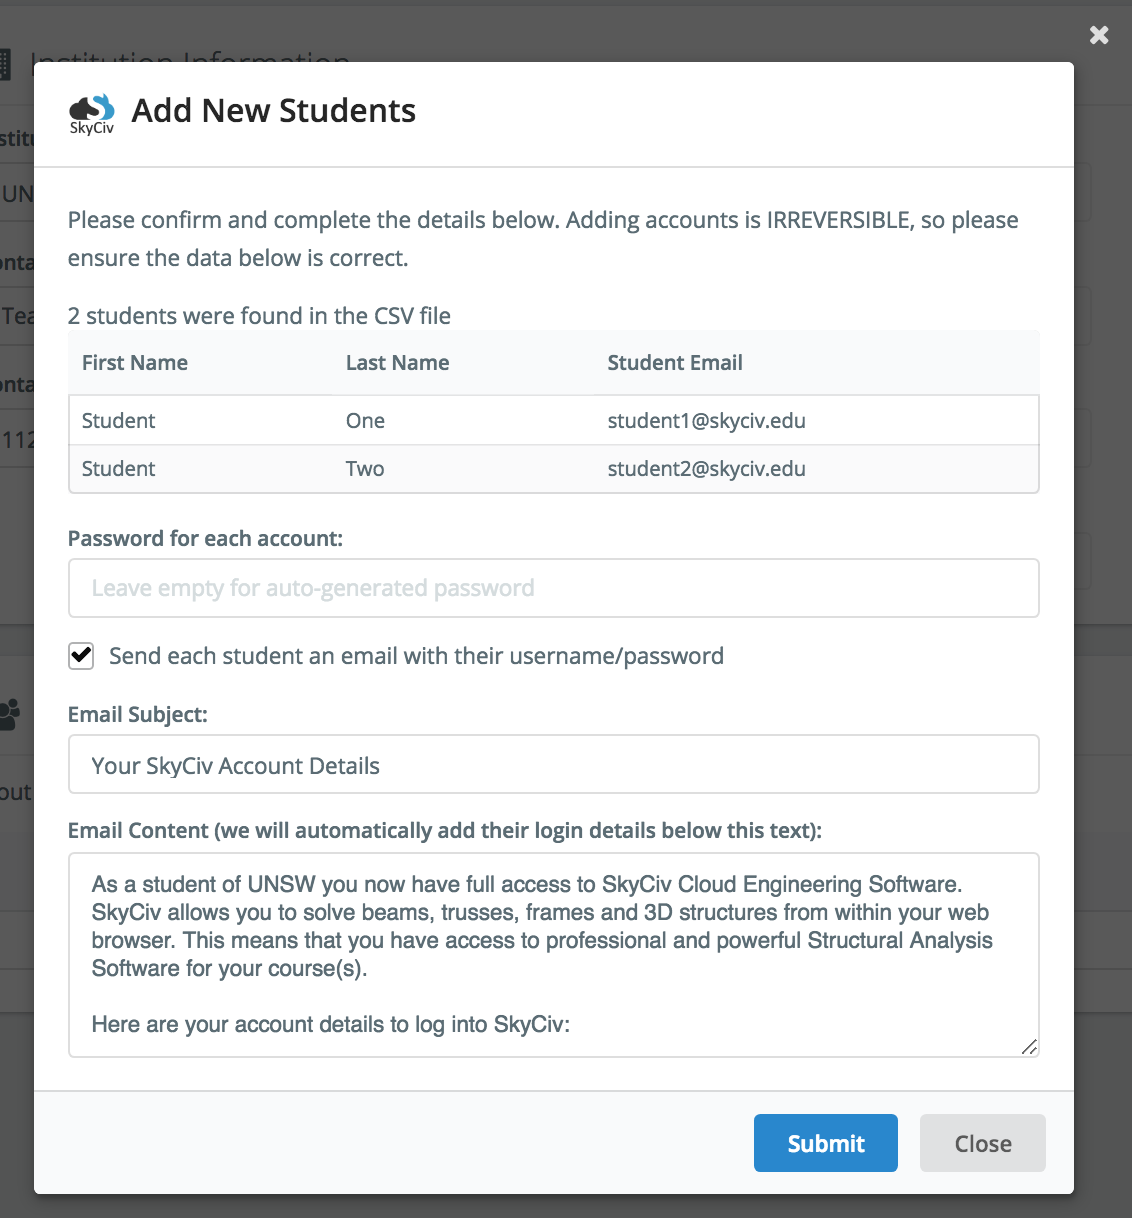 add-new-students-popup